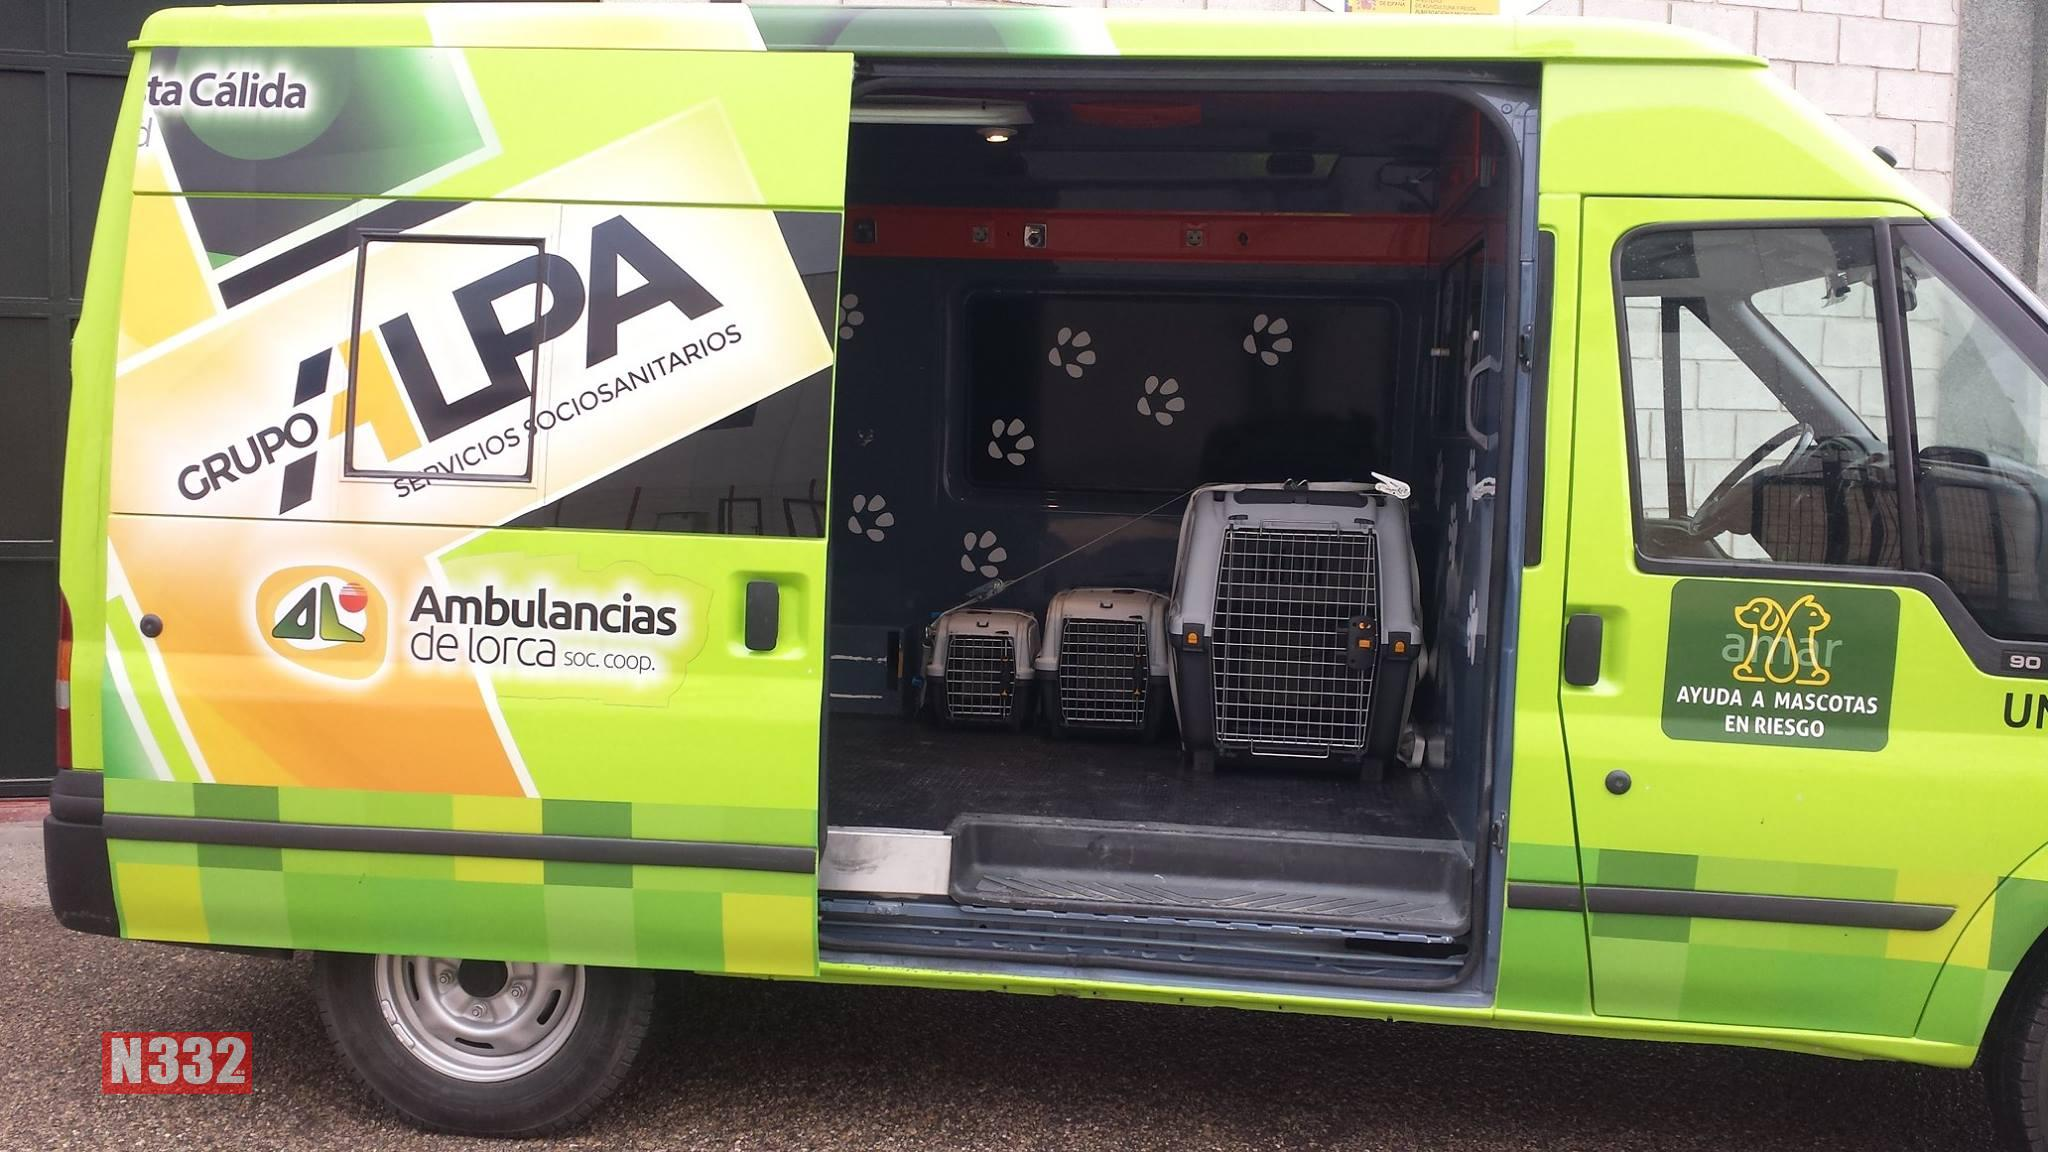 New Service Looks After the Pets of Injured Owners